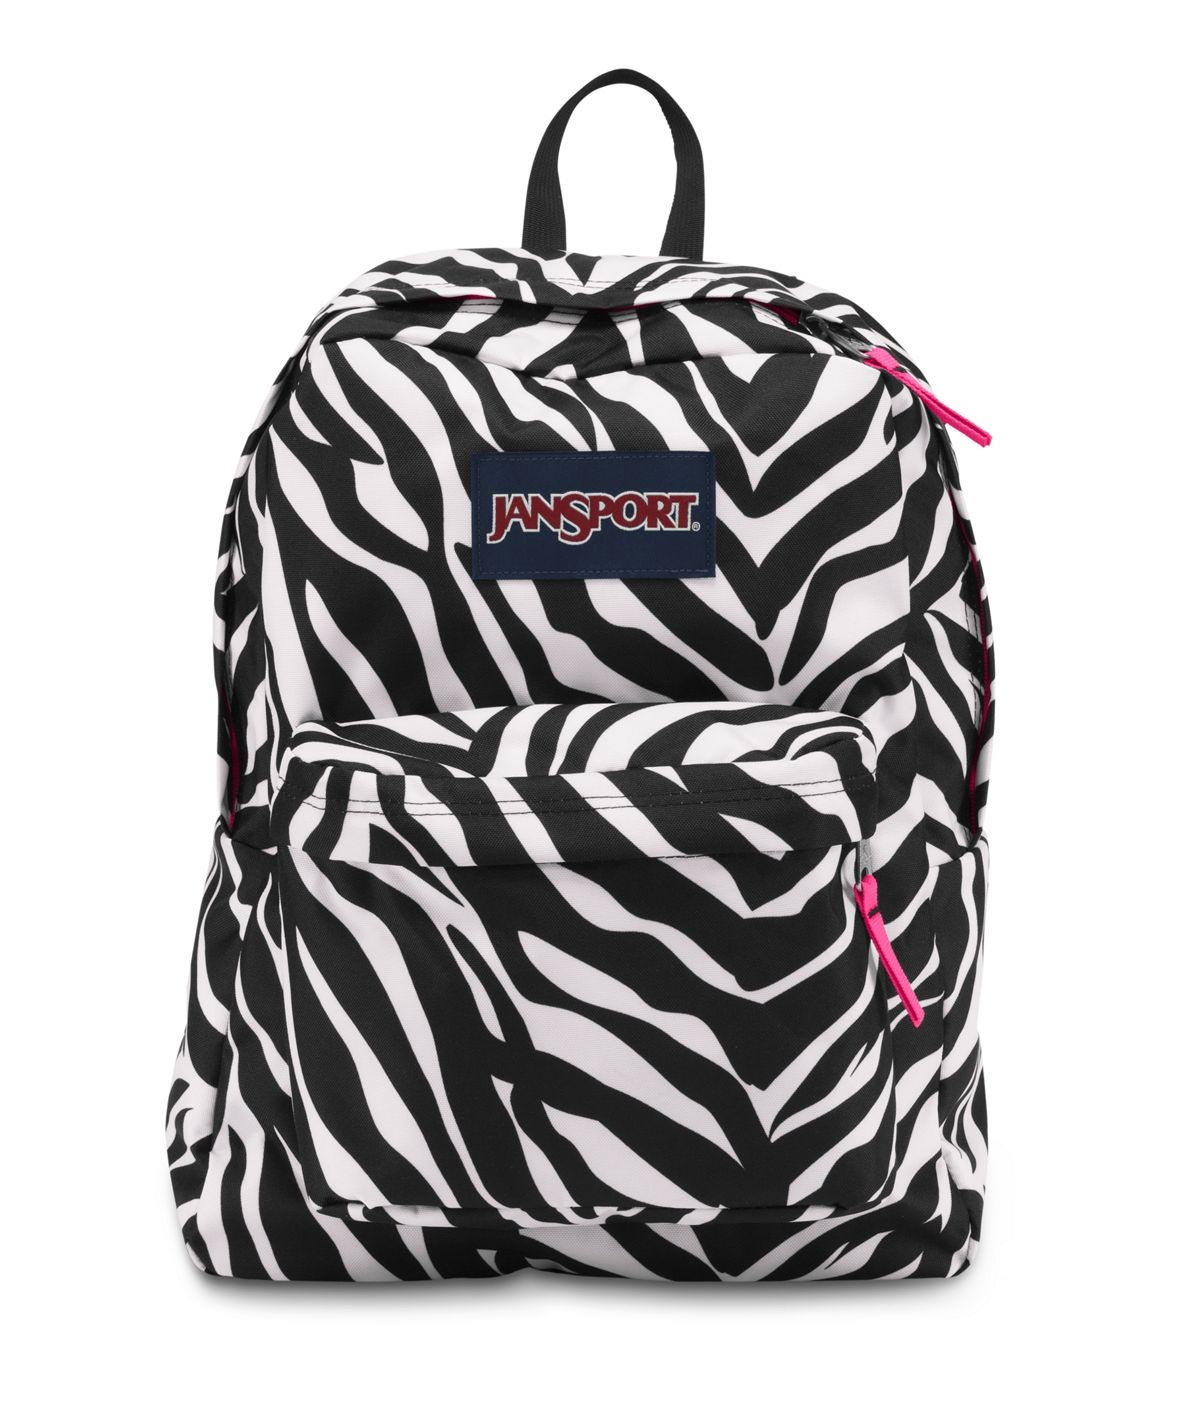 Jansport School Backpacks For Girls Mk1IVkk0